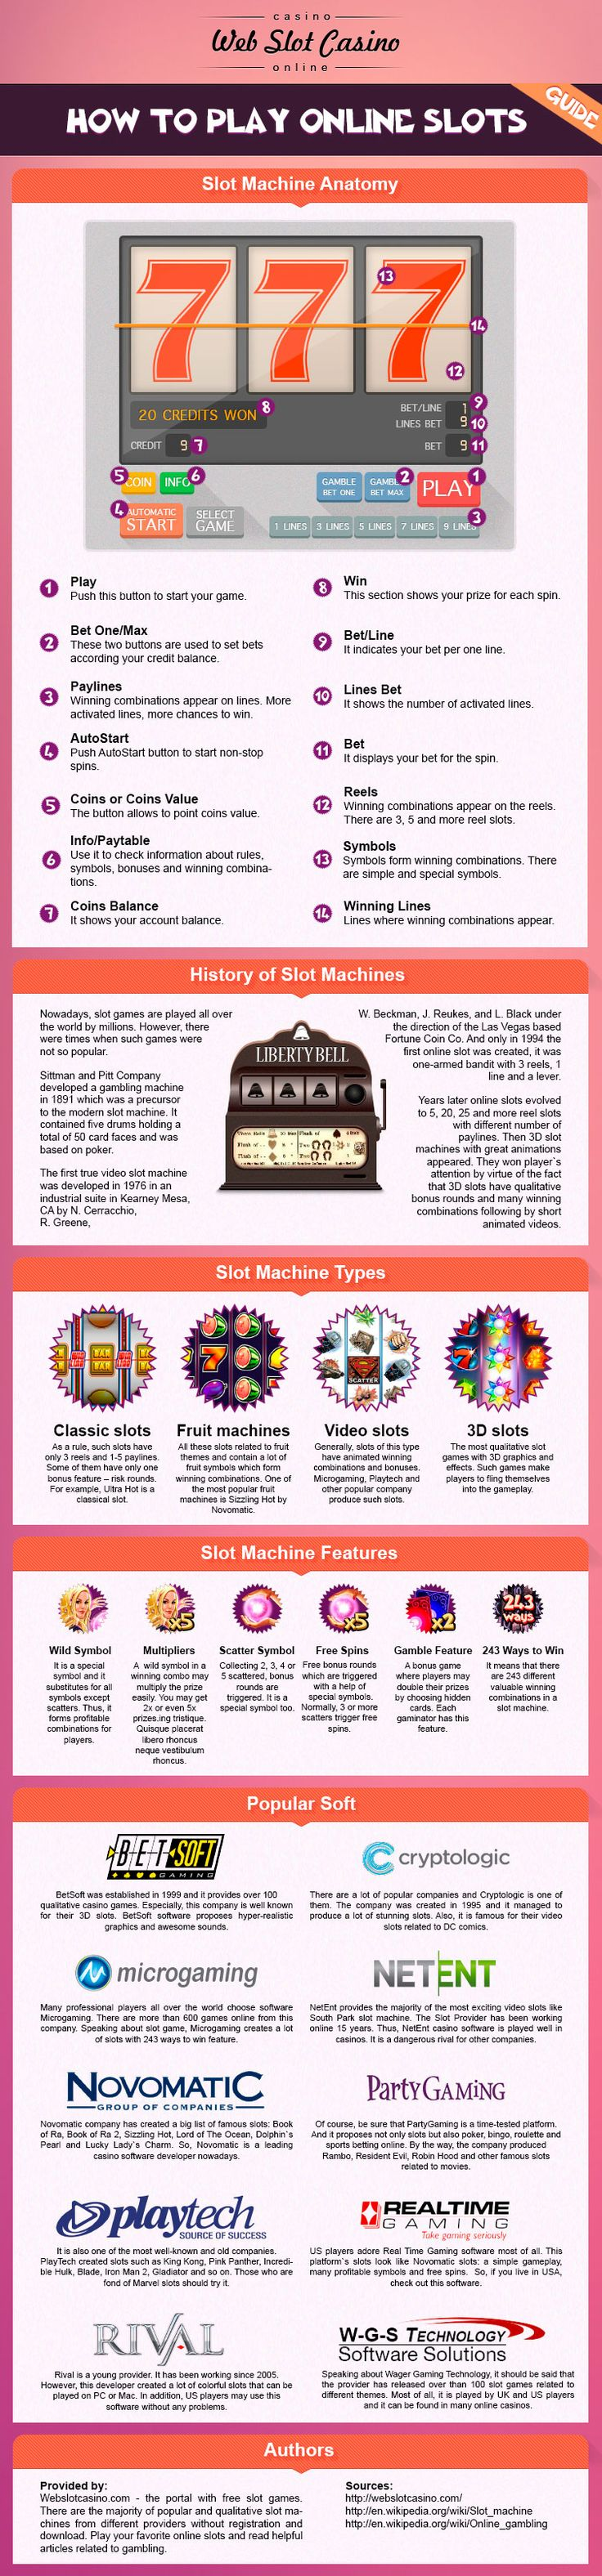 How to Play Slots Online Guide #infographic #HowTo #Slots